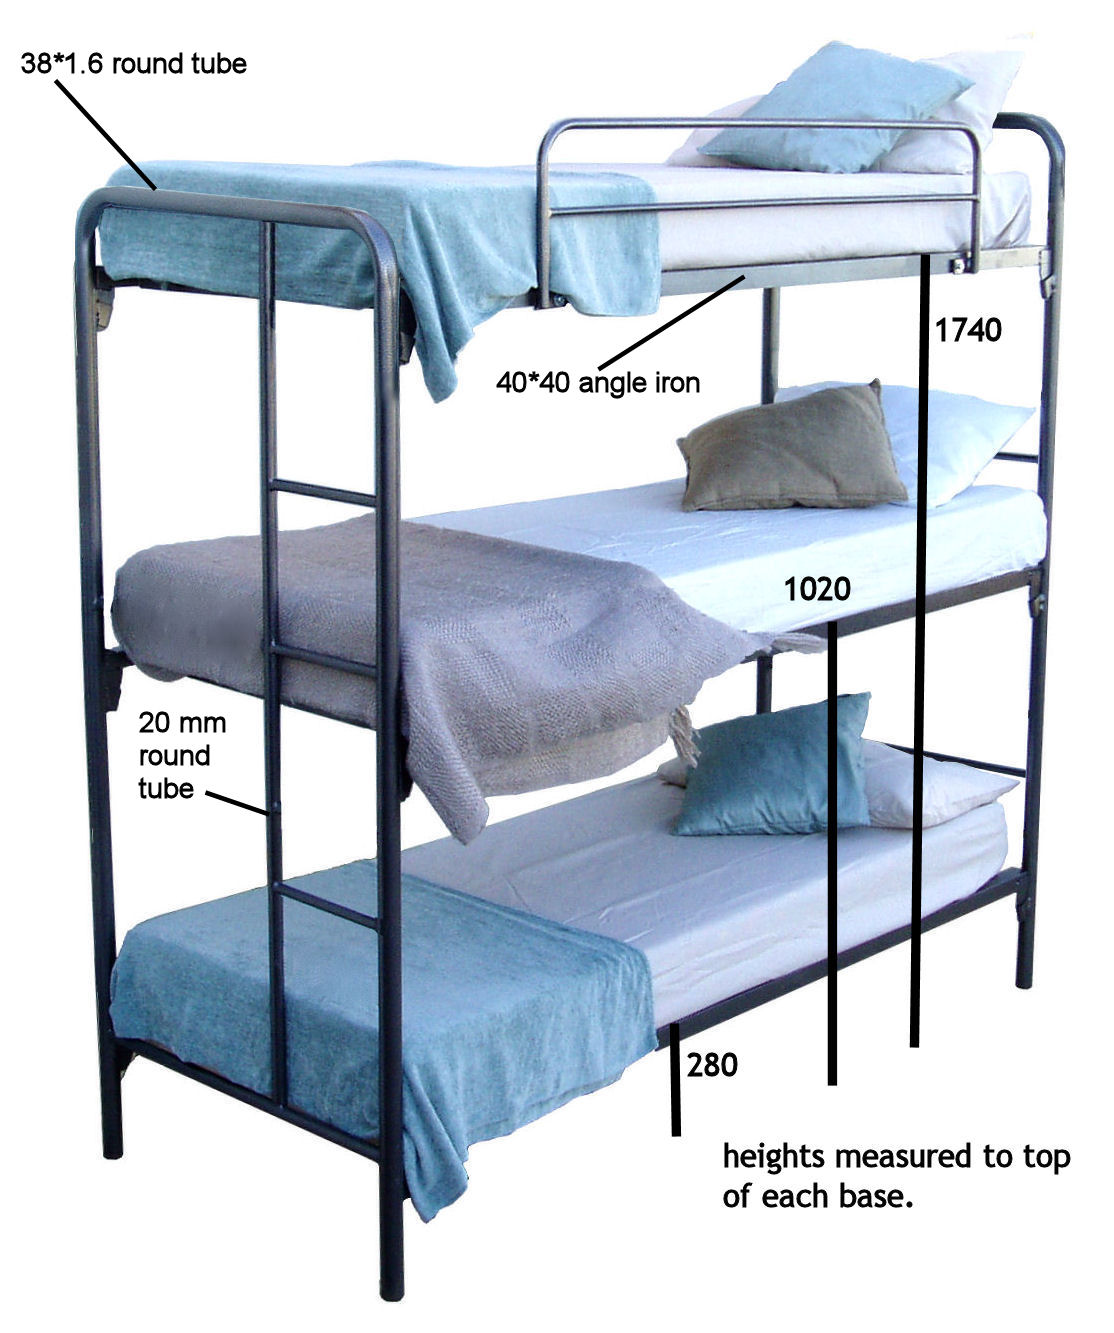 BCS Triple Bunk Beds Dimensions